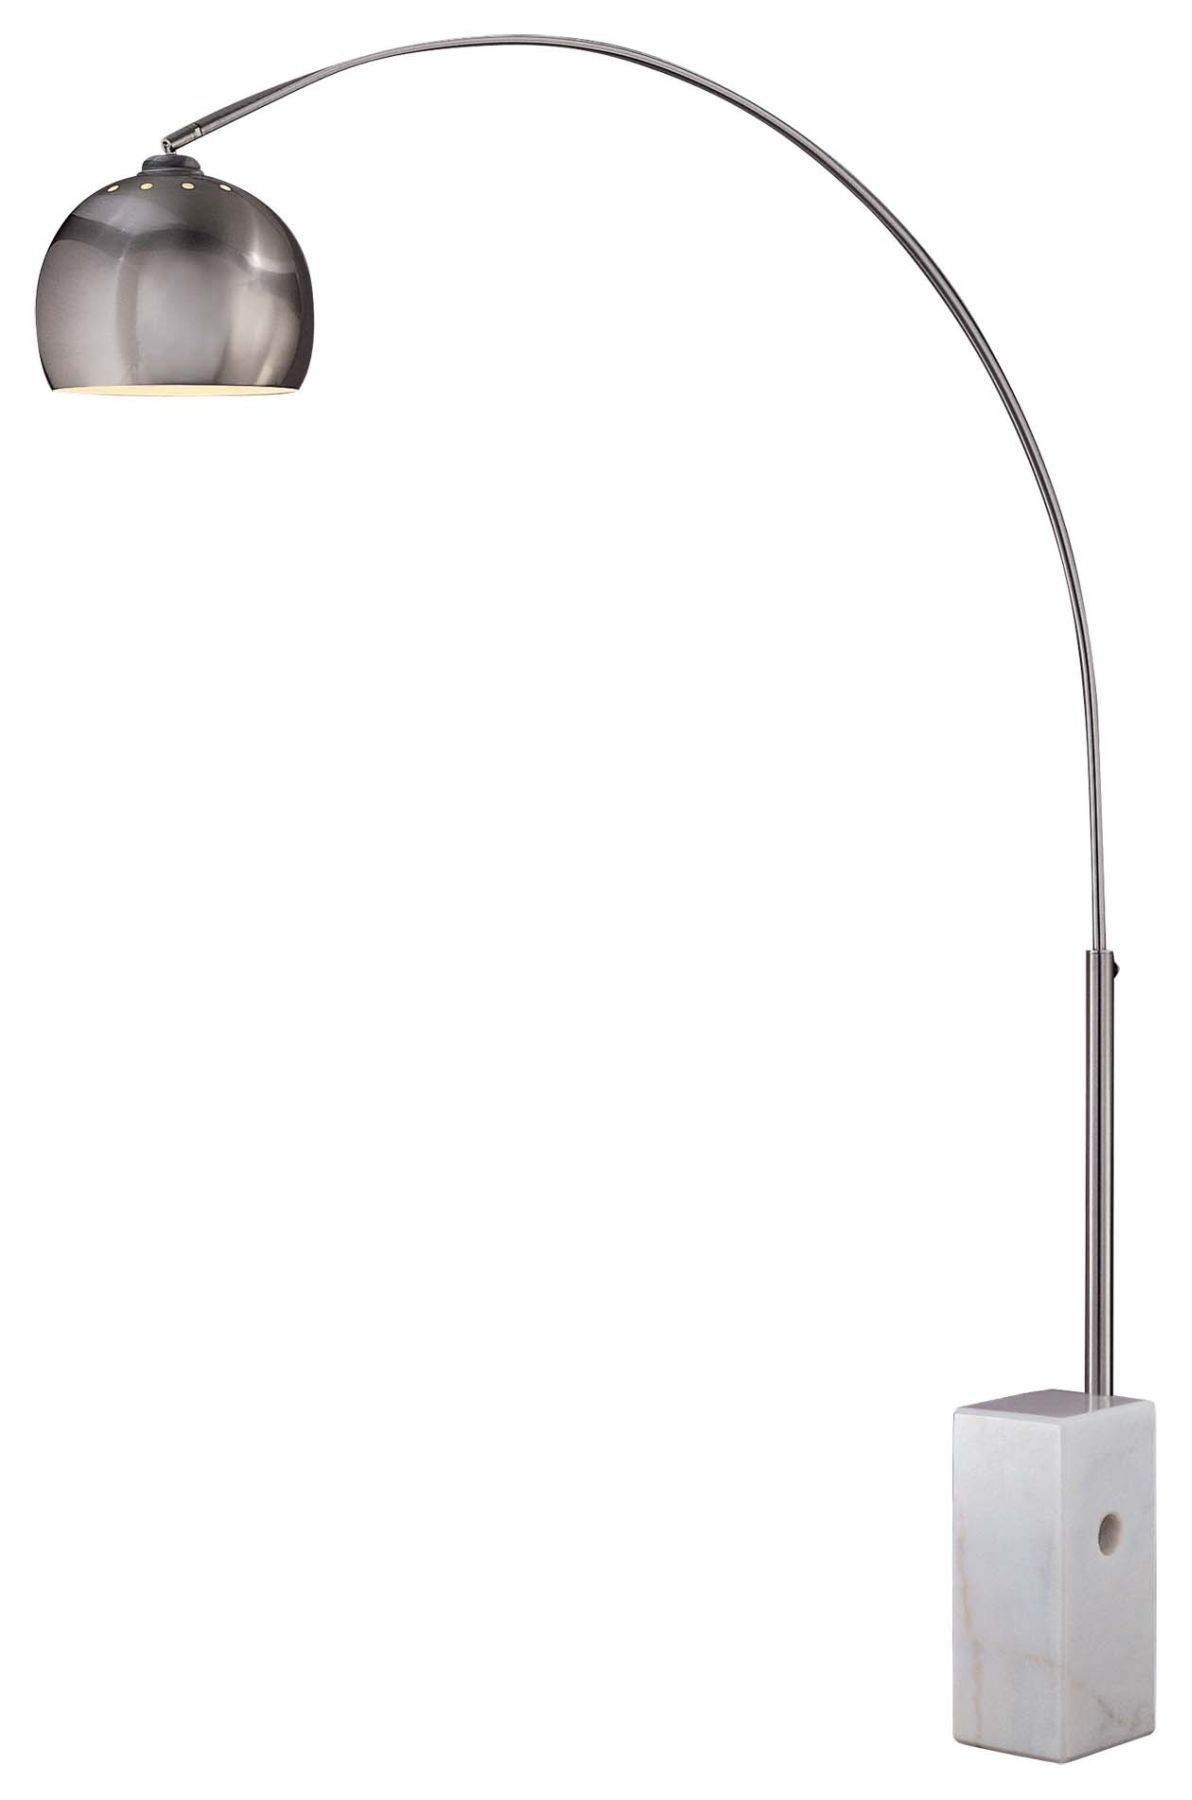 Replica Arco Lamp Purchased From Craigslist Arc Floor Lamps Lamp Silver Floor Lamp